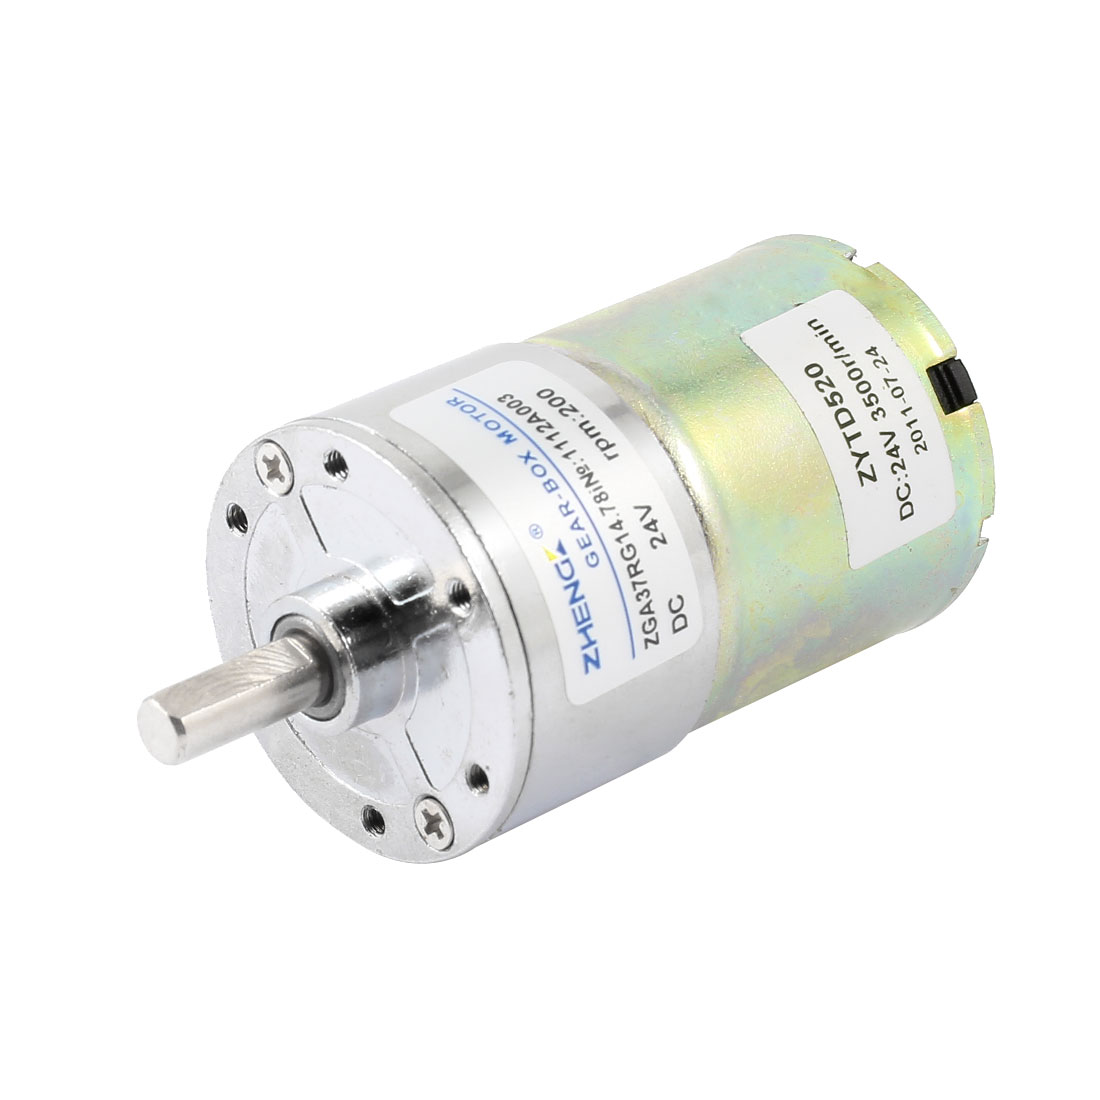 DC 24V 200 RPM Speed 6mm Dia Shaft Magnetic Gearbox Electric Geared Motor